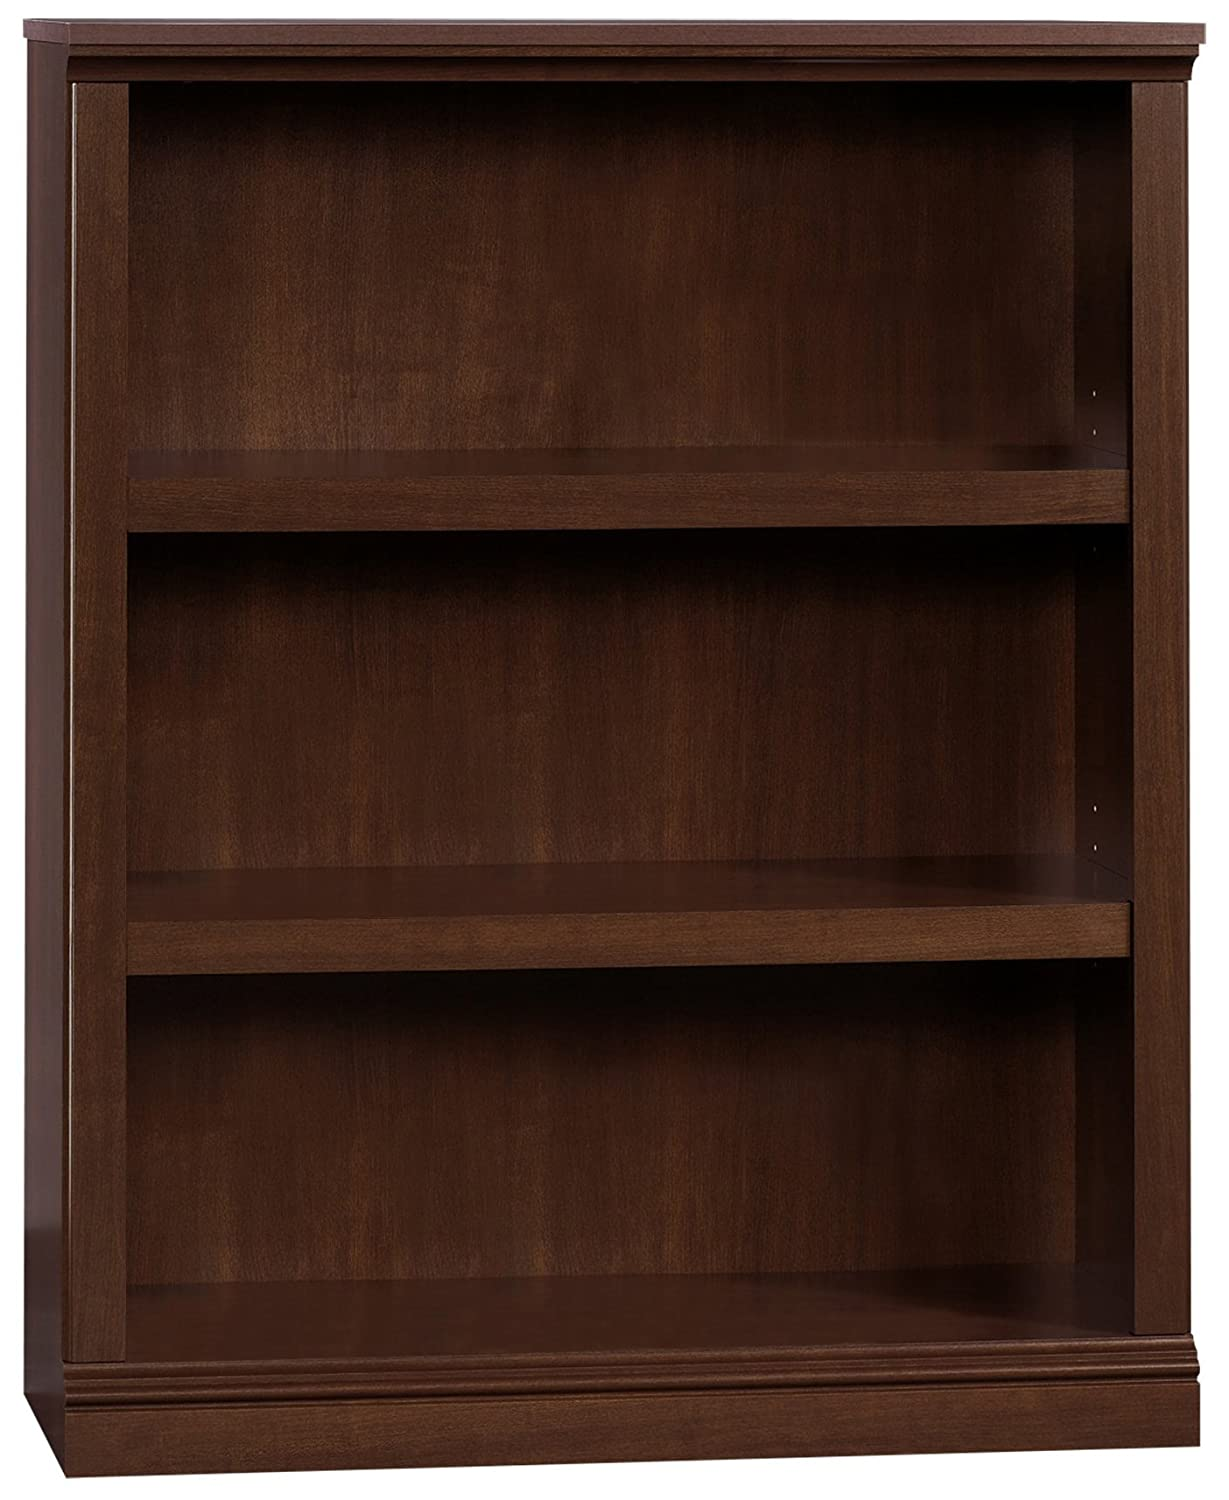 "Sauder 412808 3 Shelf Bookcase, L: 35.28"" x W: 13.23"" x H: 43.78"", Select Cherry finish"